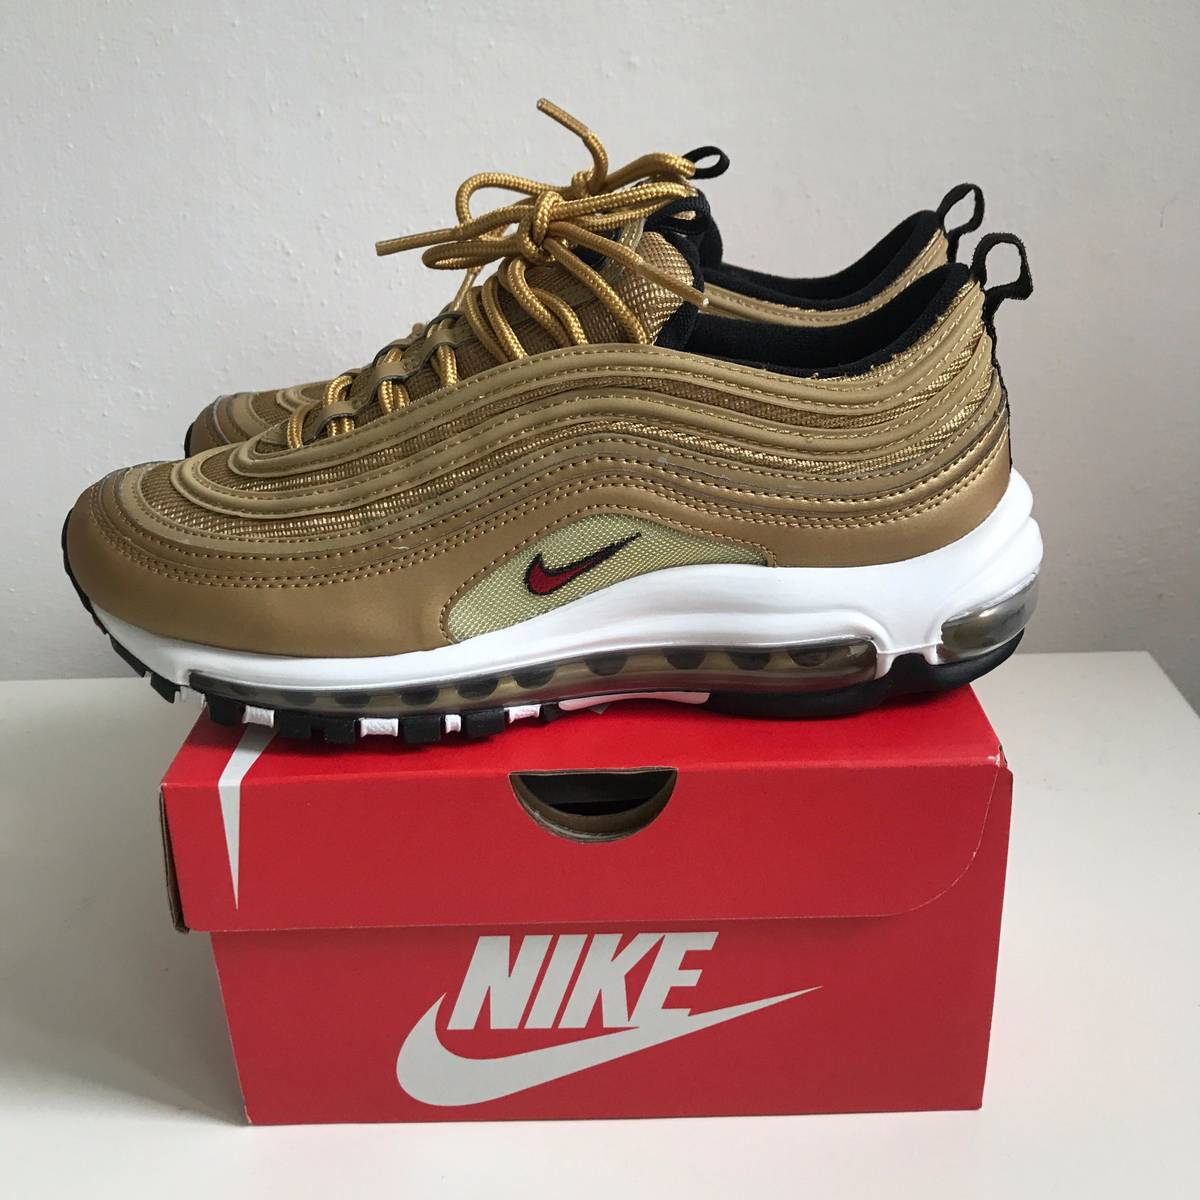 60%OFF Cheap Nike WMNS Air Max 97 OG QS gold 885691 700